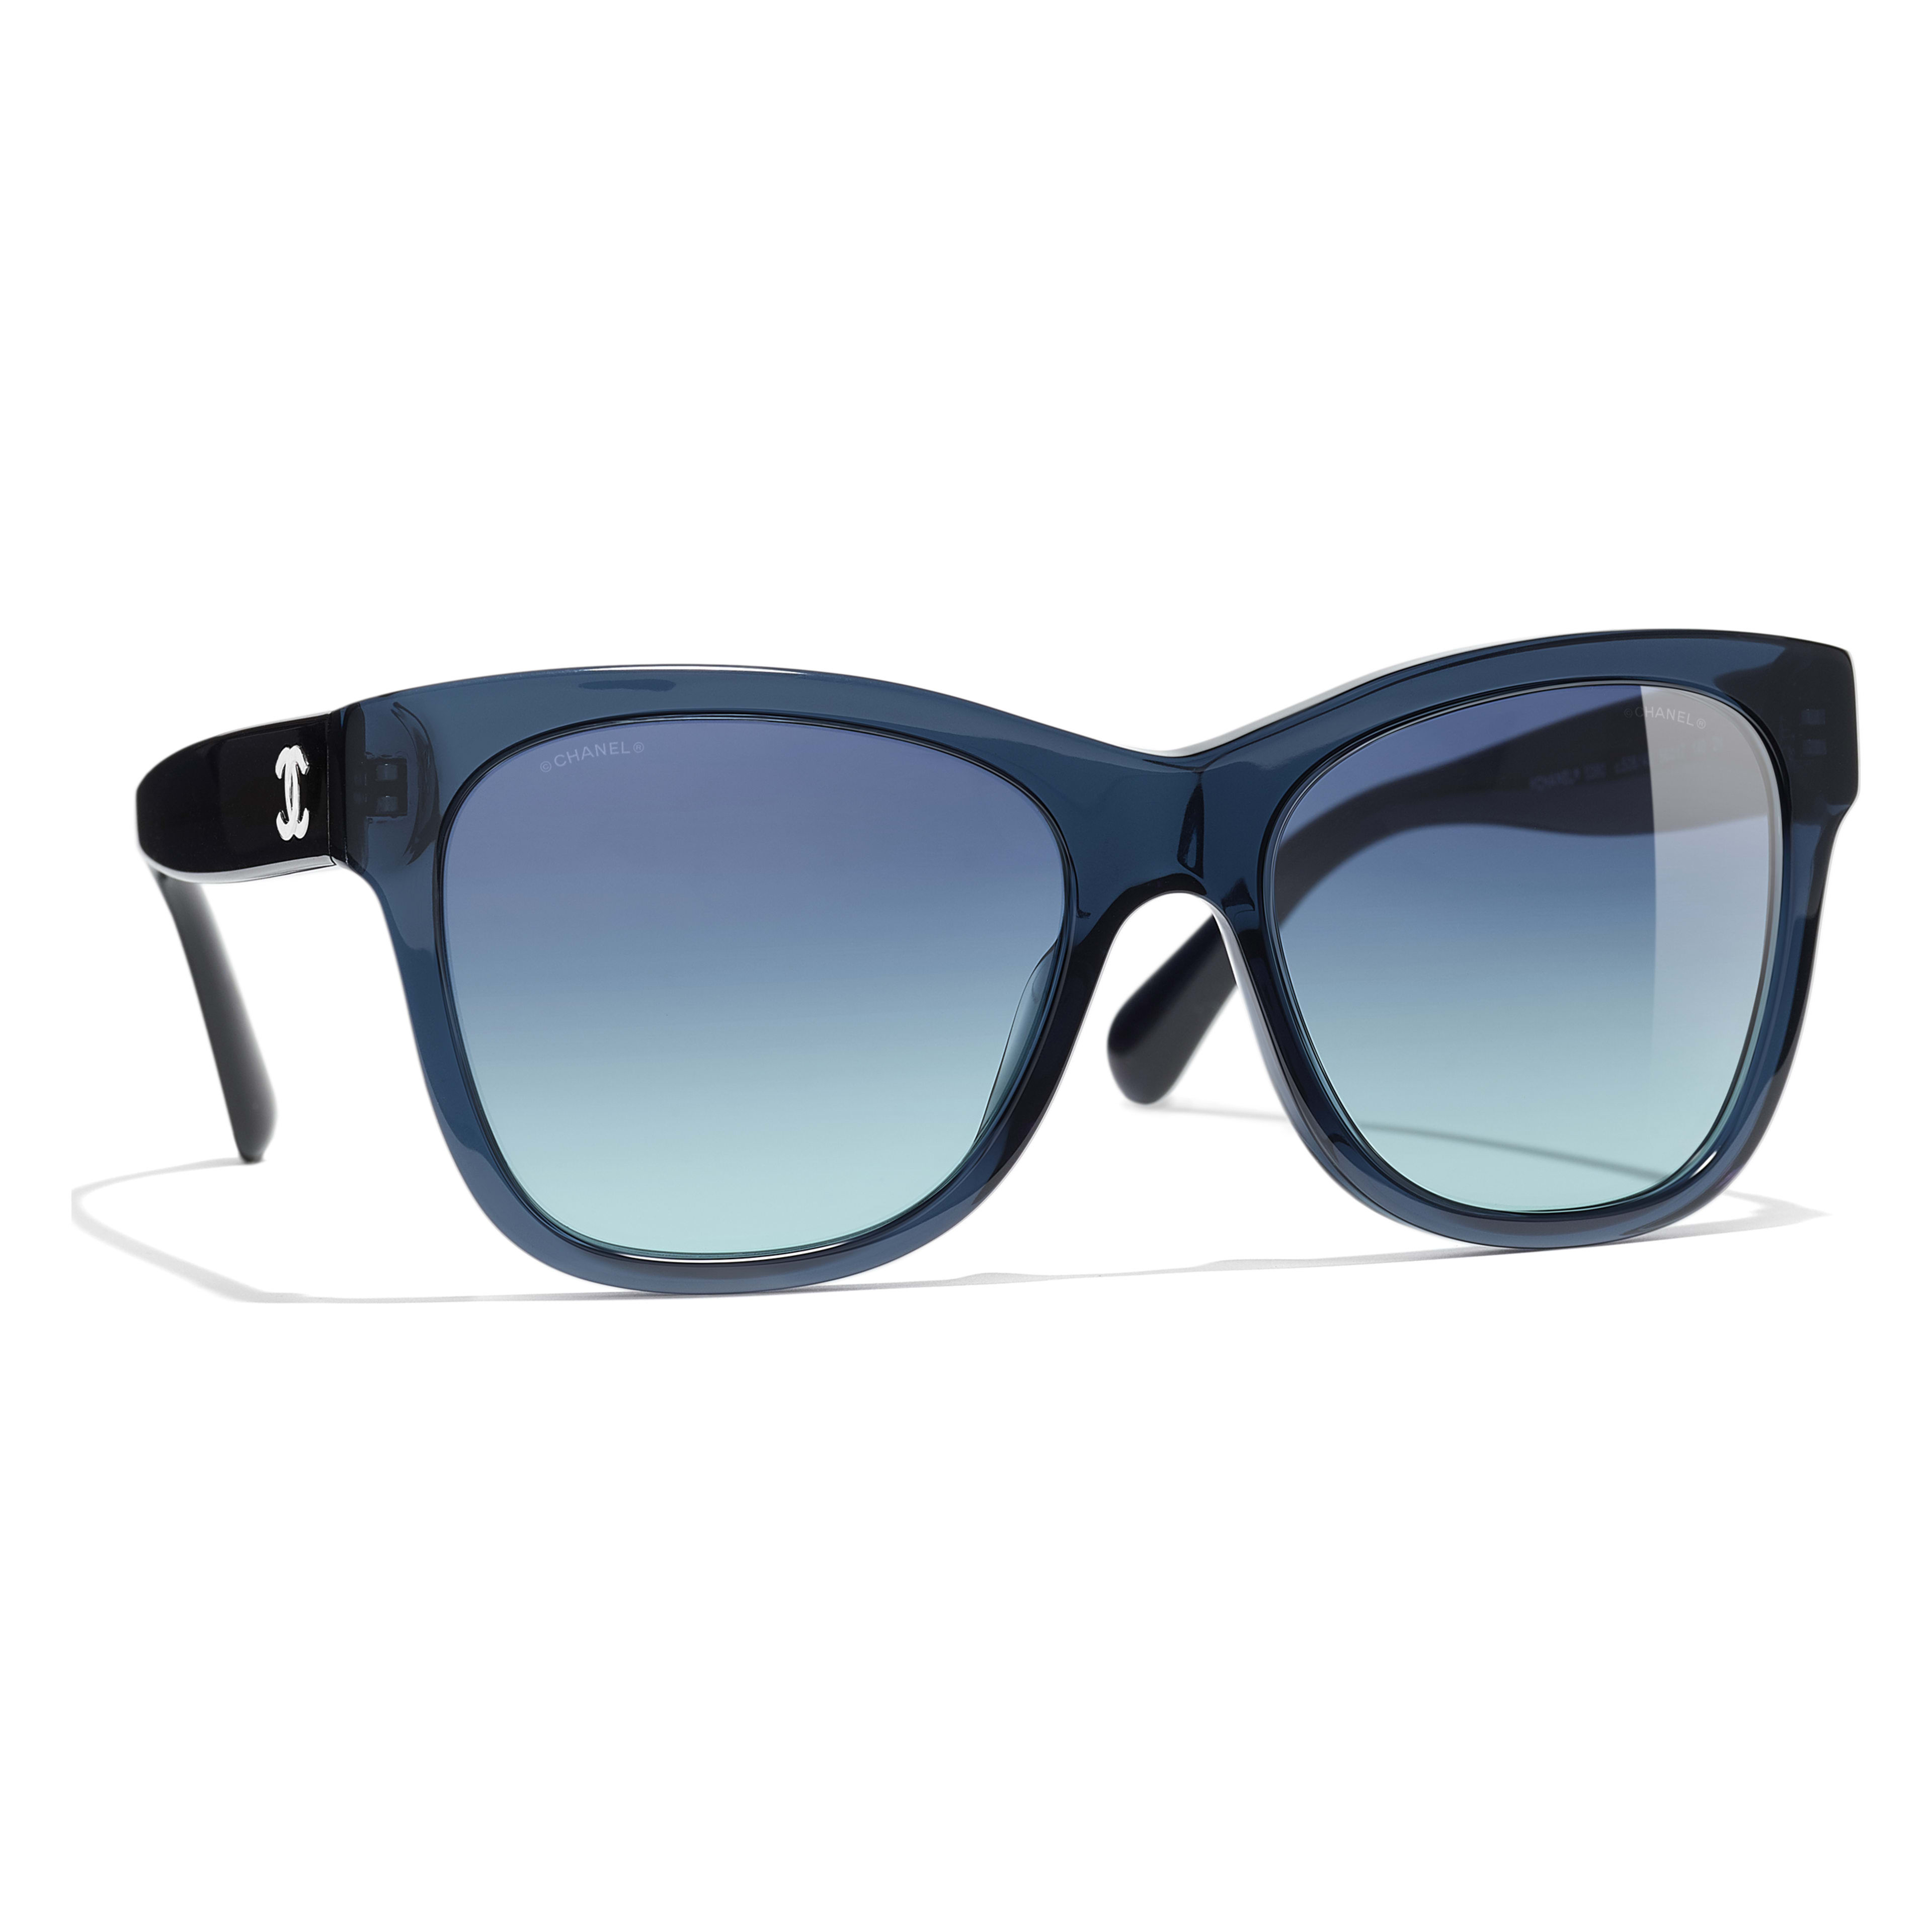 8fd01e58db5ff See other colors Blue frame. Blue gradient lenses.